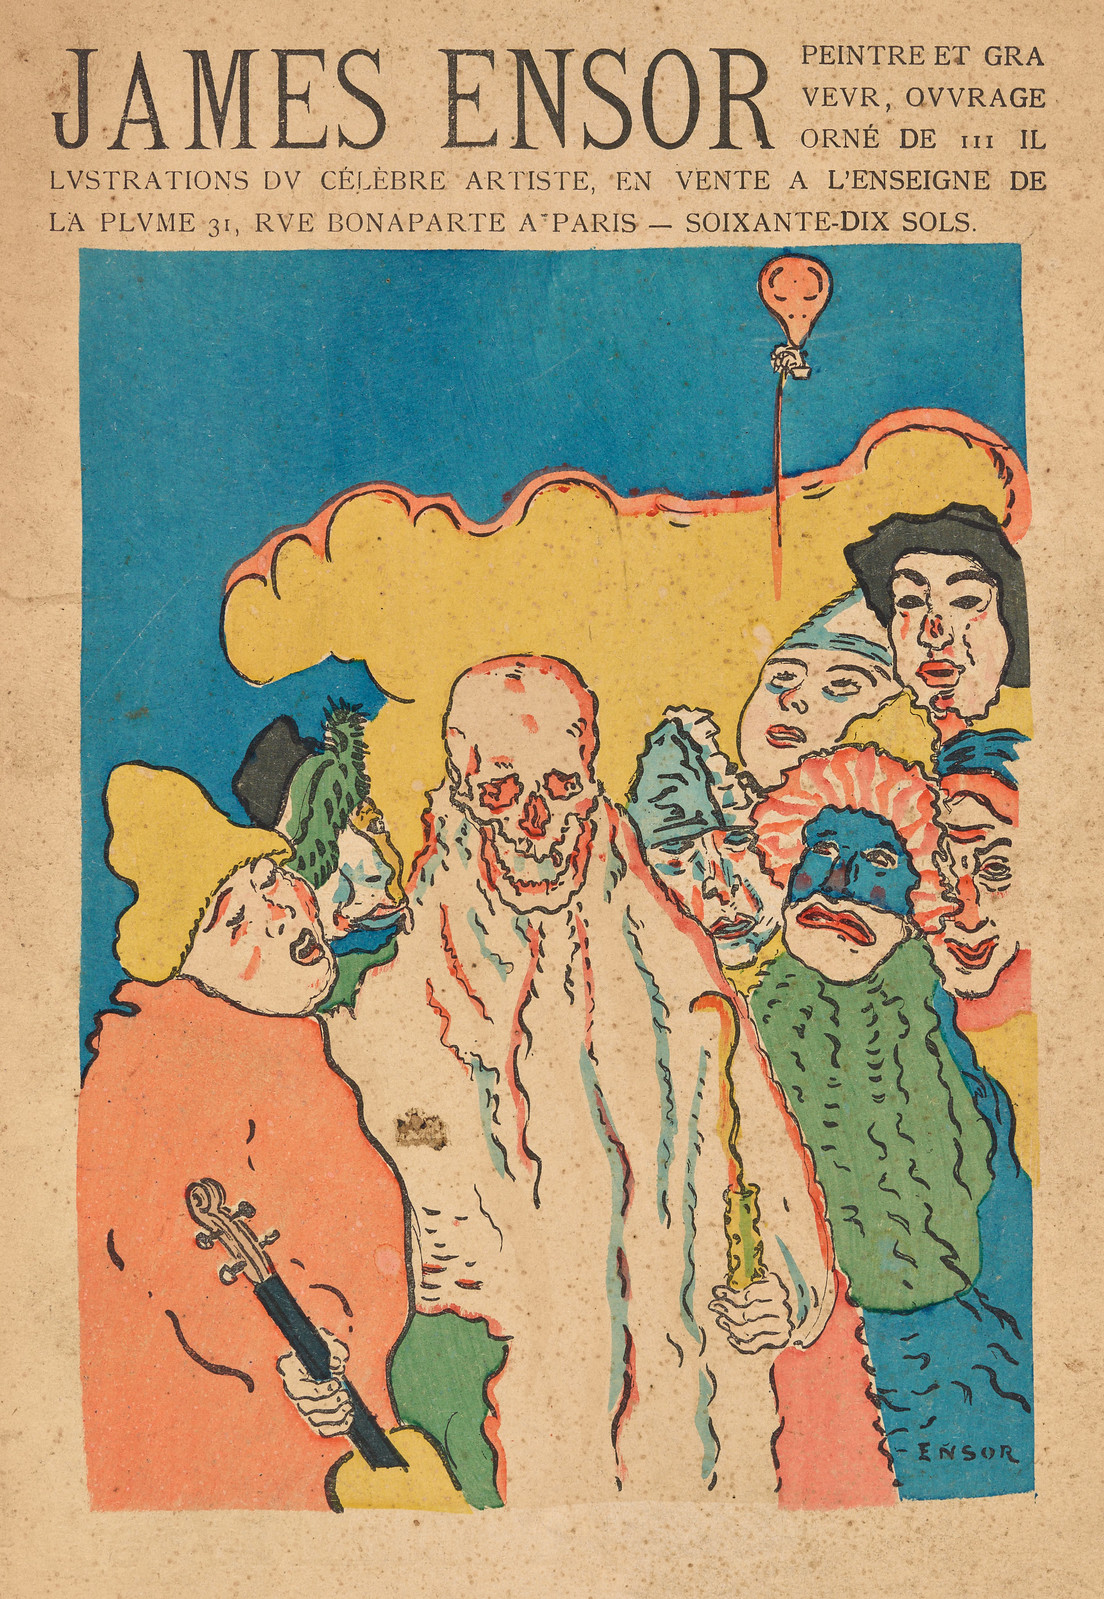 James Ensor - Cover art for Peintre and Graveur, 1899